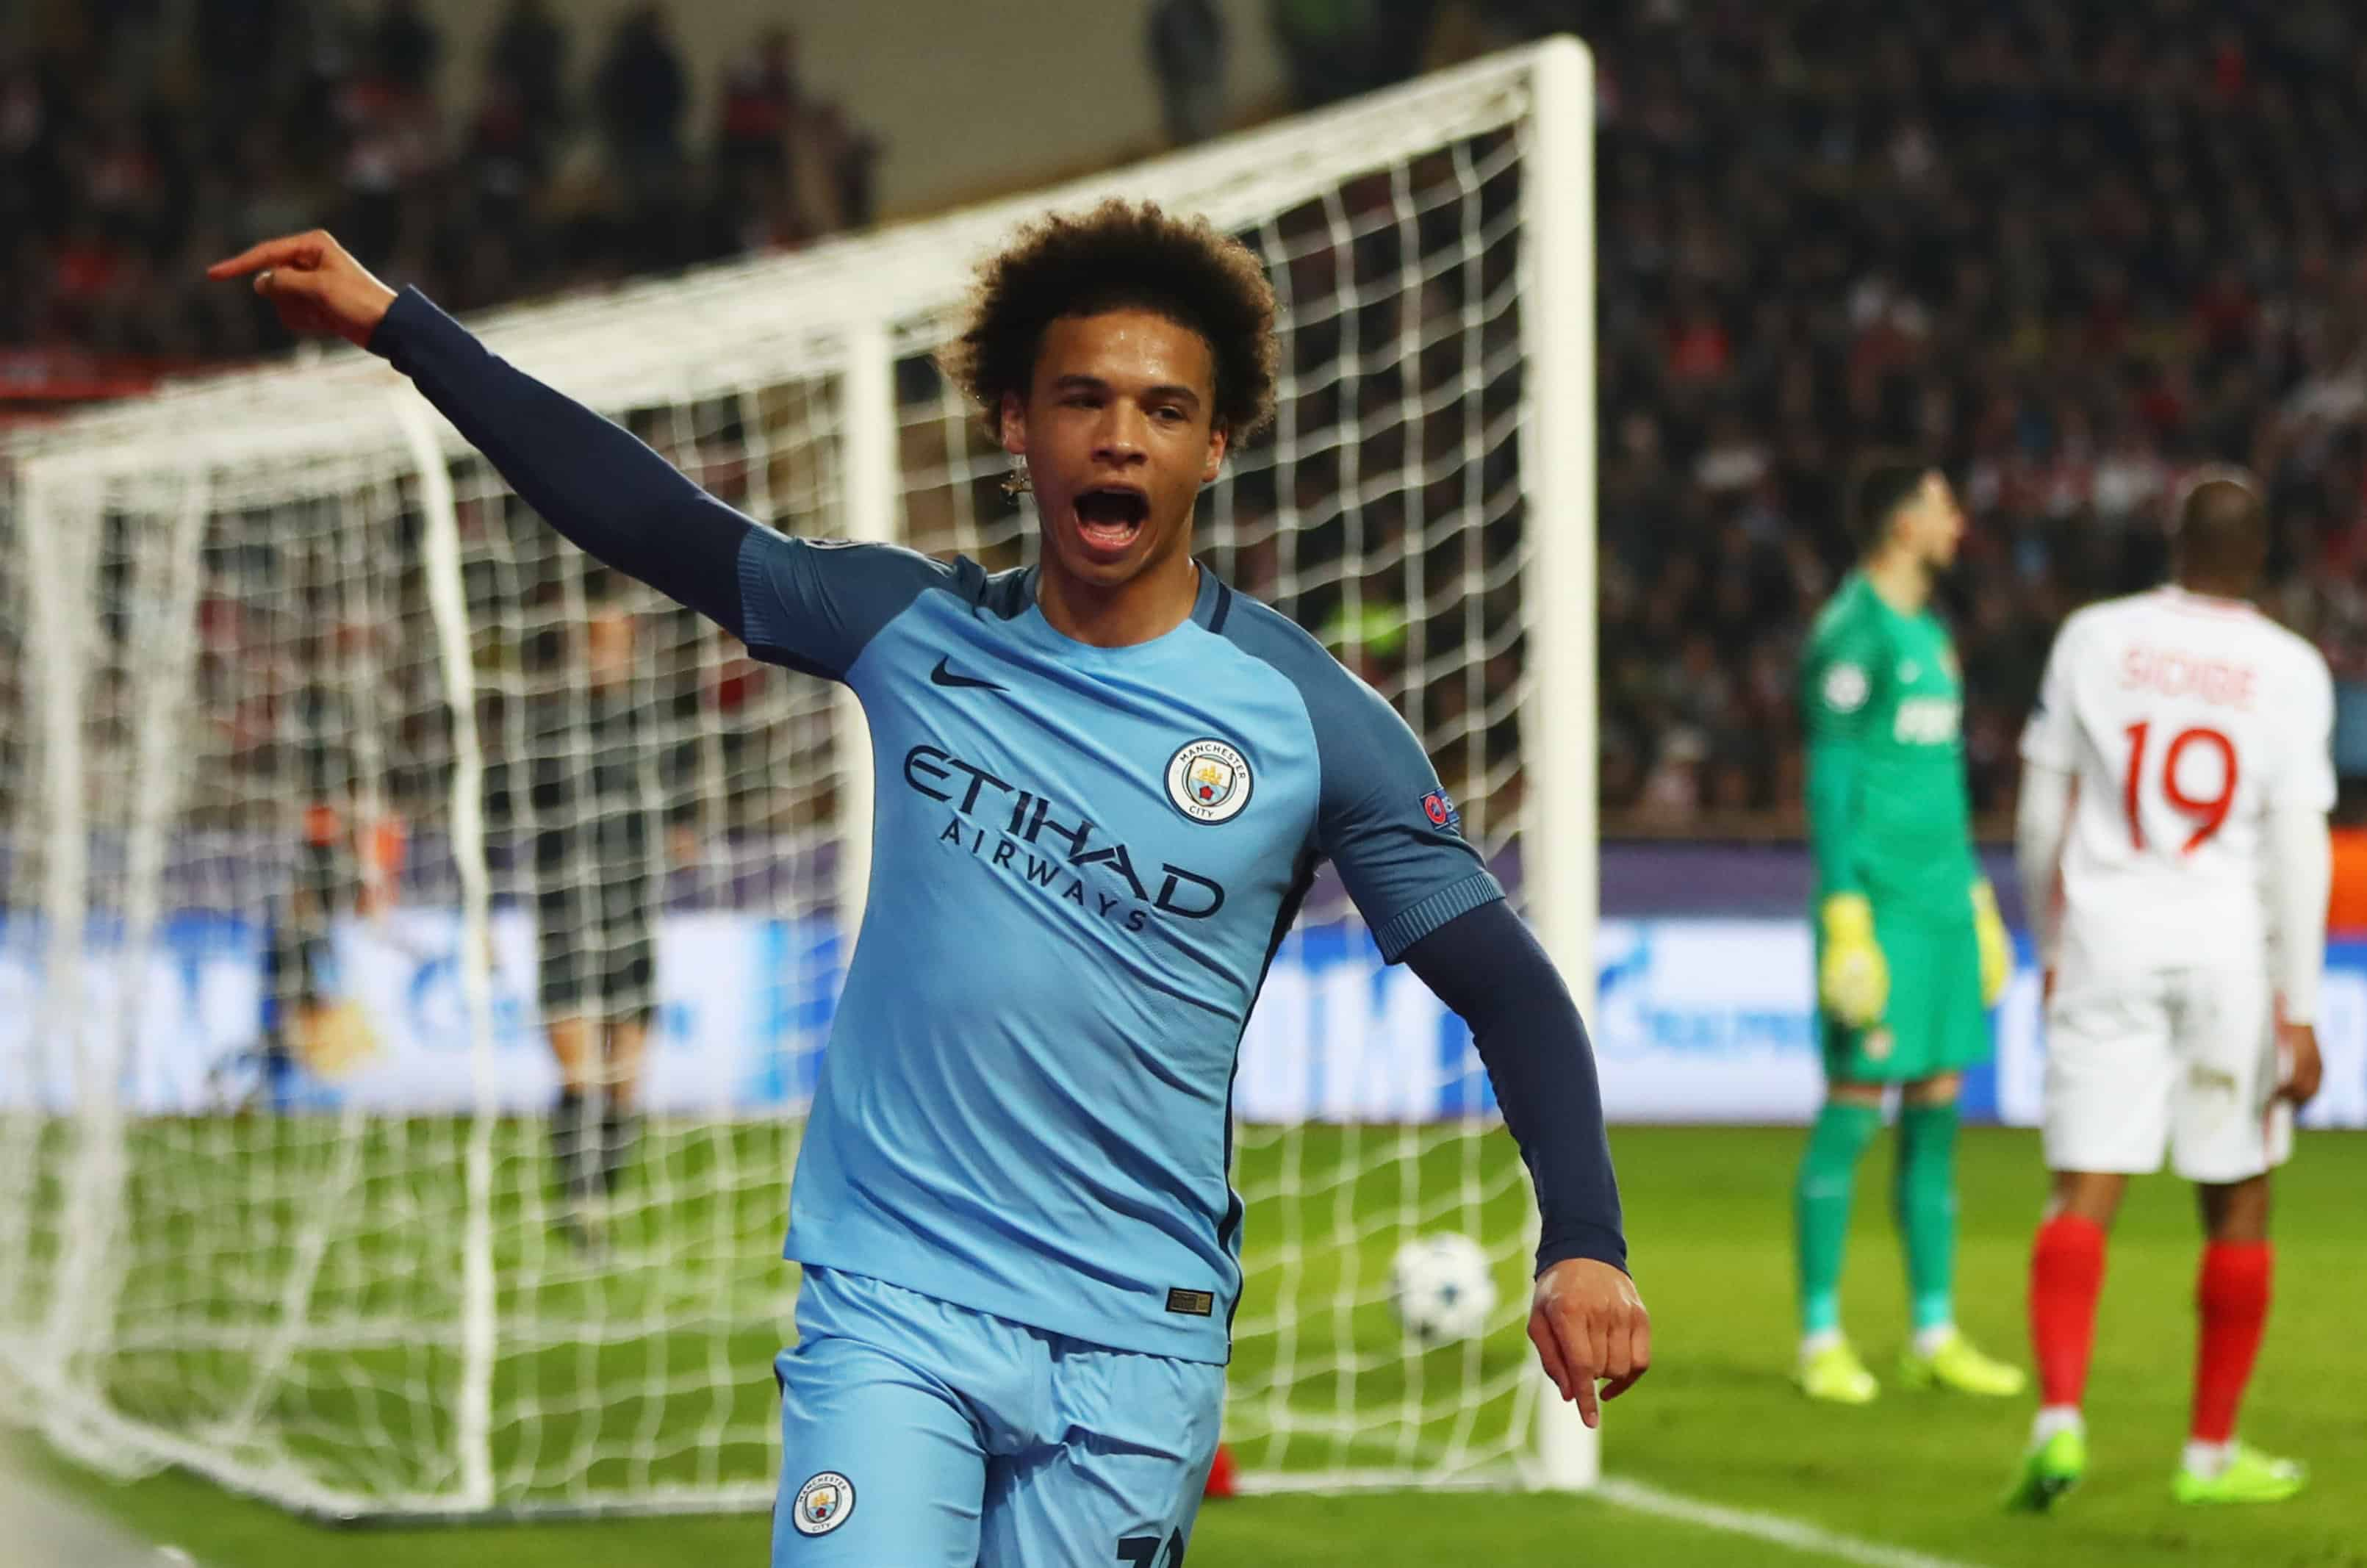 Praise heaped on Leroy Sane after goal against Monaco in Champions